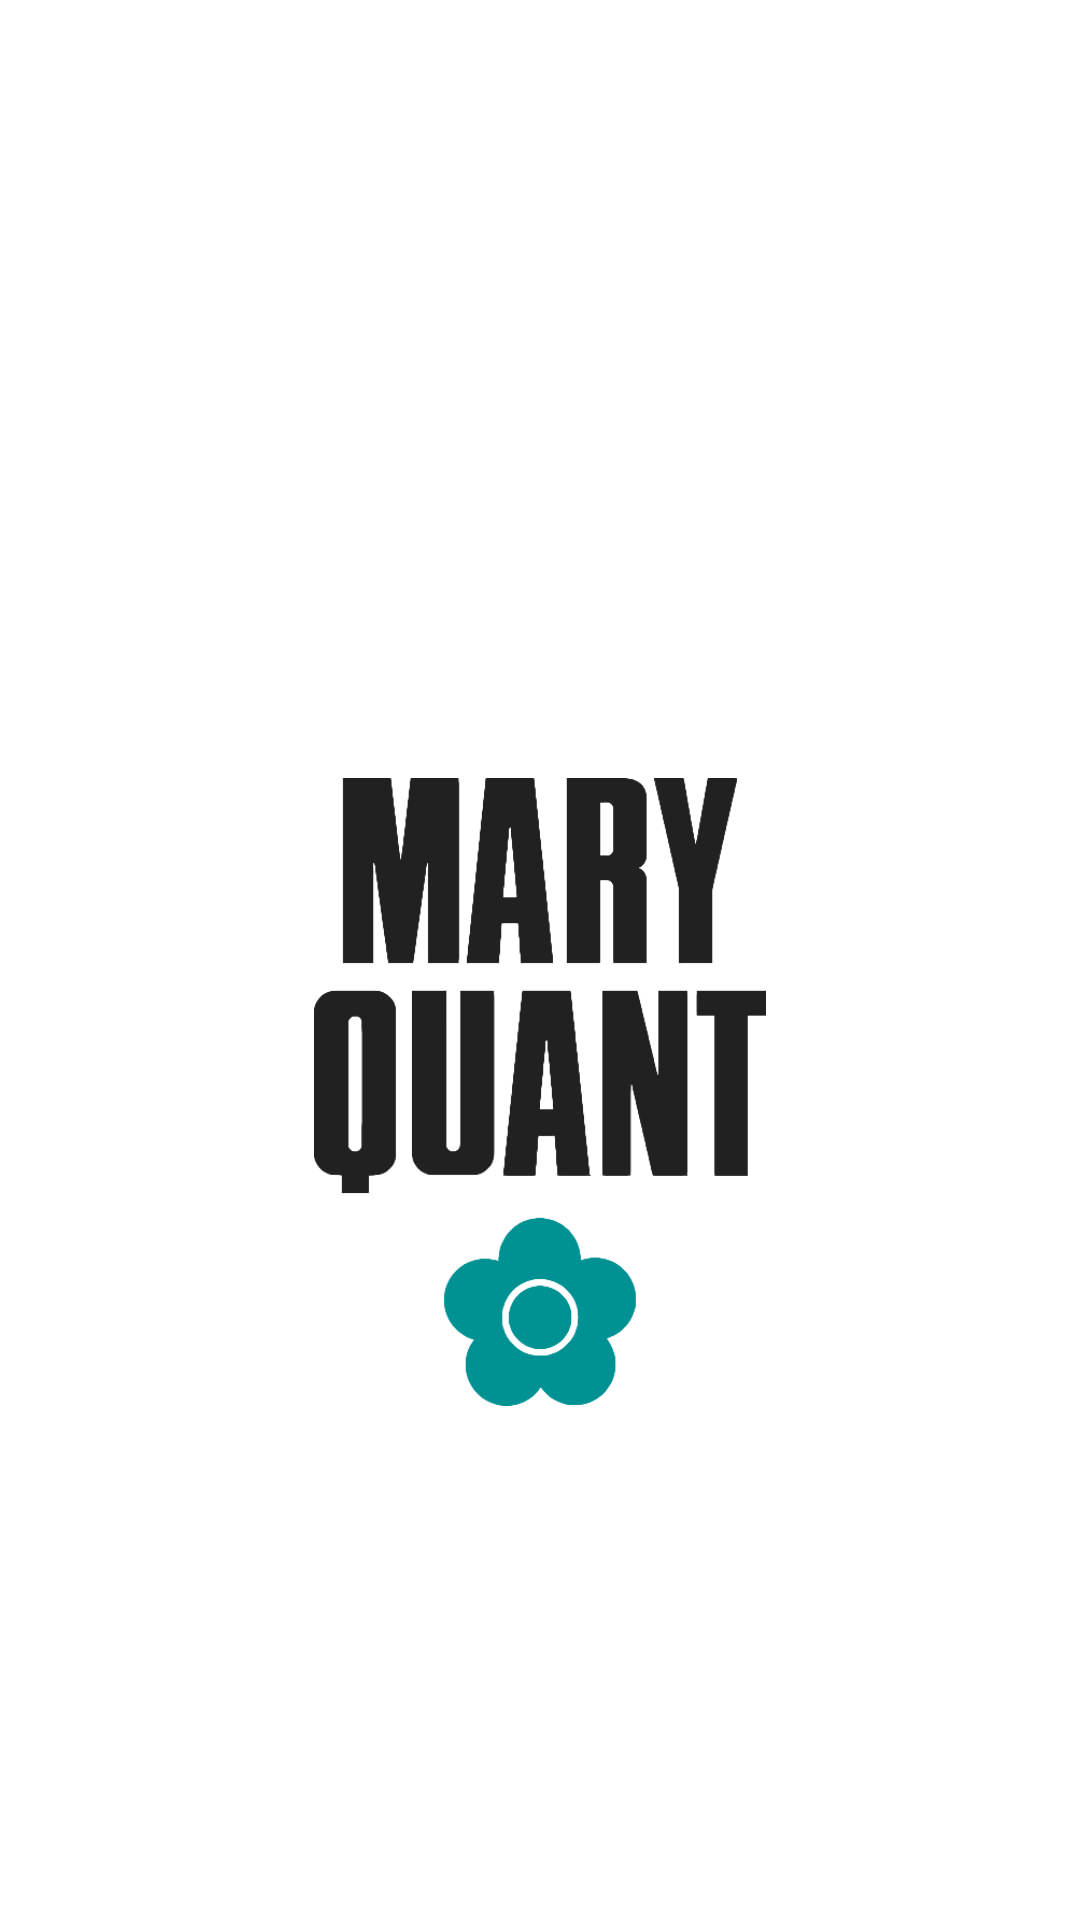 maryquant i19 - 20 MARY QUANT HQ Smartphone Wallpaper Collection